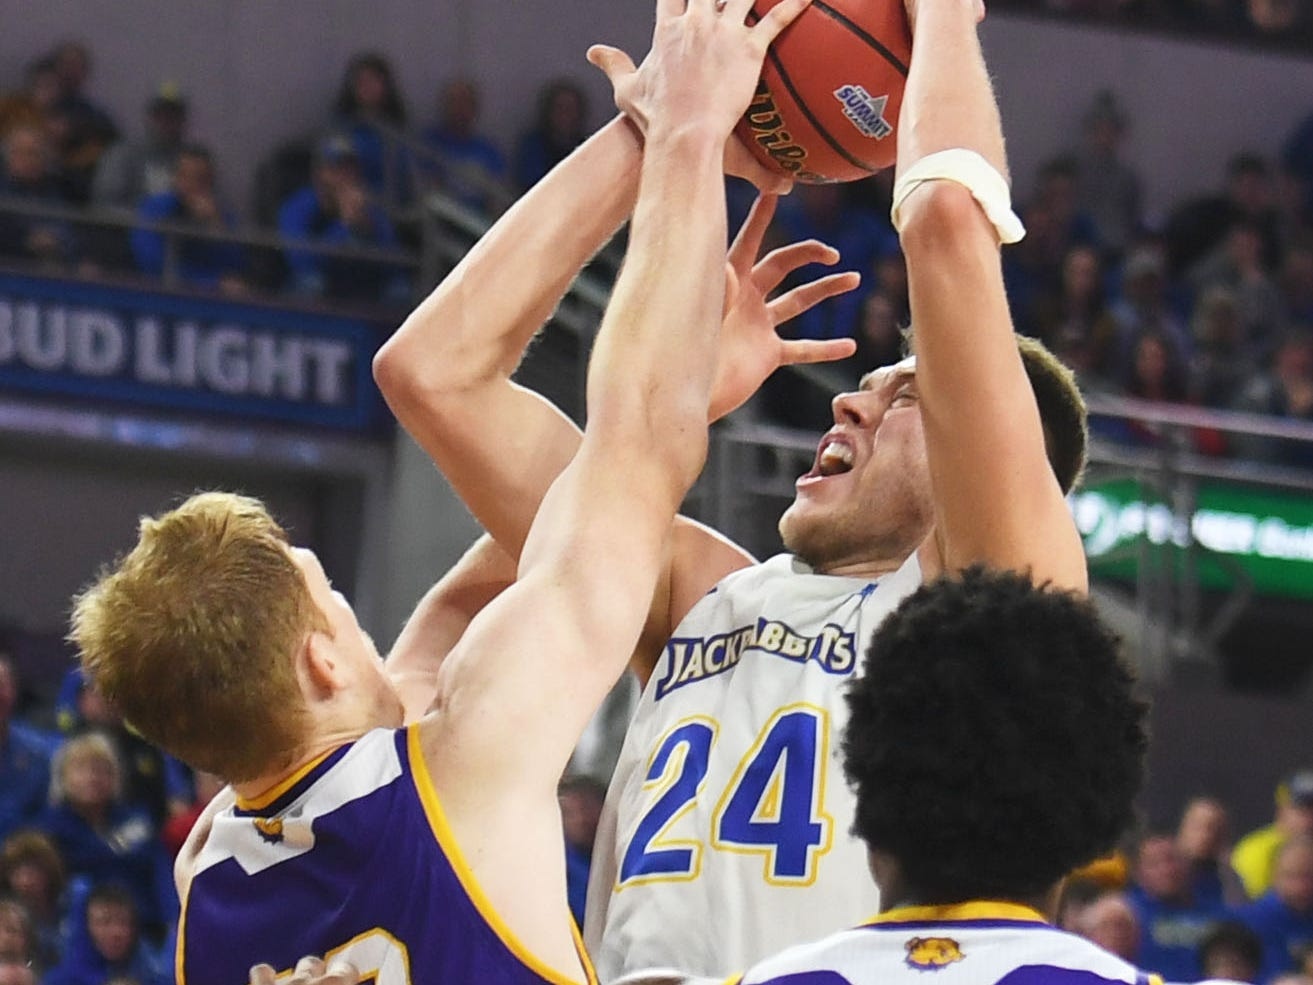 SDSU's Mike Daum attempts to score against Western Illinois Saturday, March 9, in the Summit League tournament at the Denny Sanford Premier Center in Sioux Falls.